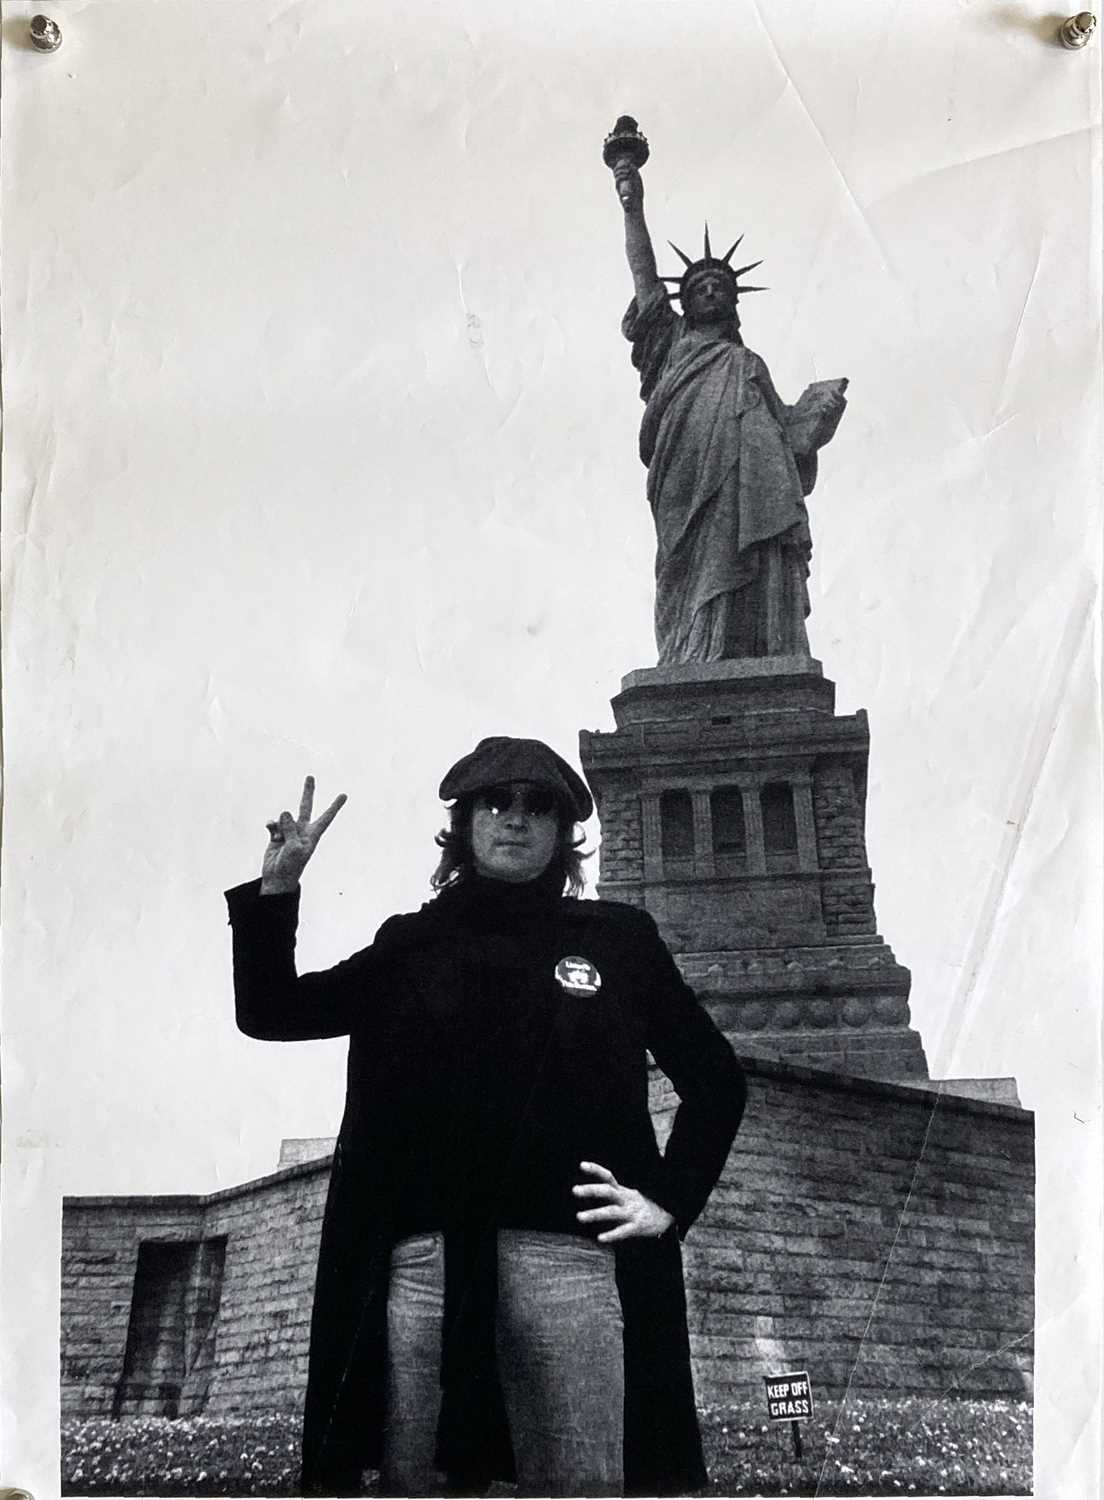 BEATLES / ROLLING STONES POSTERS. - Image 3 of 8